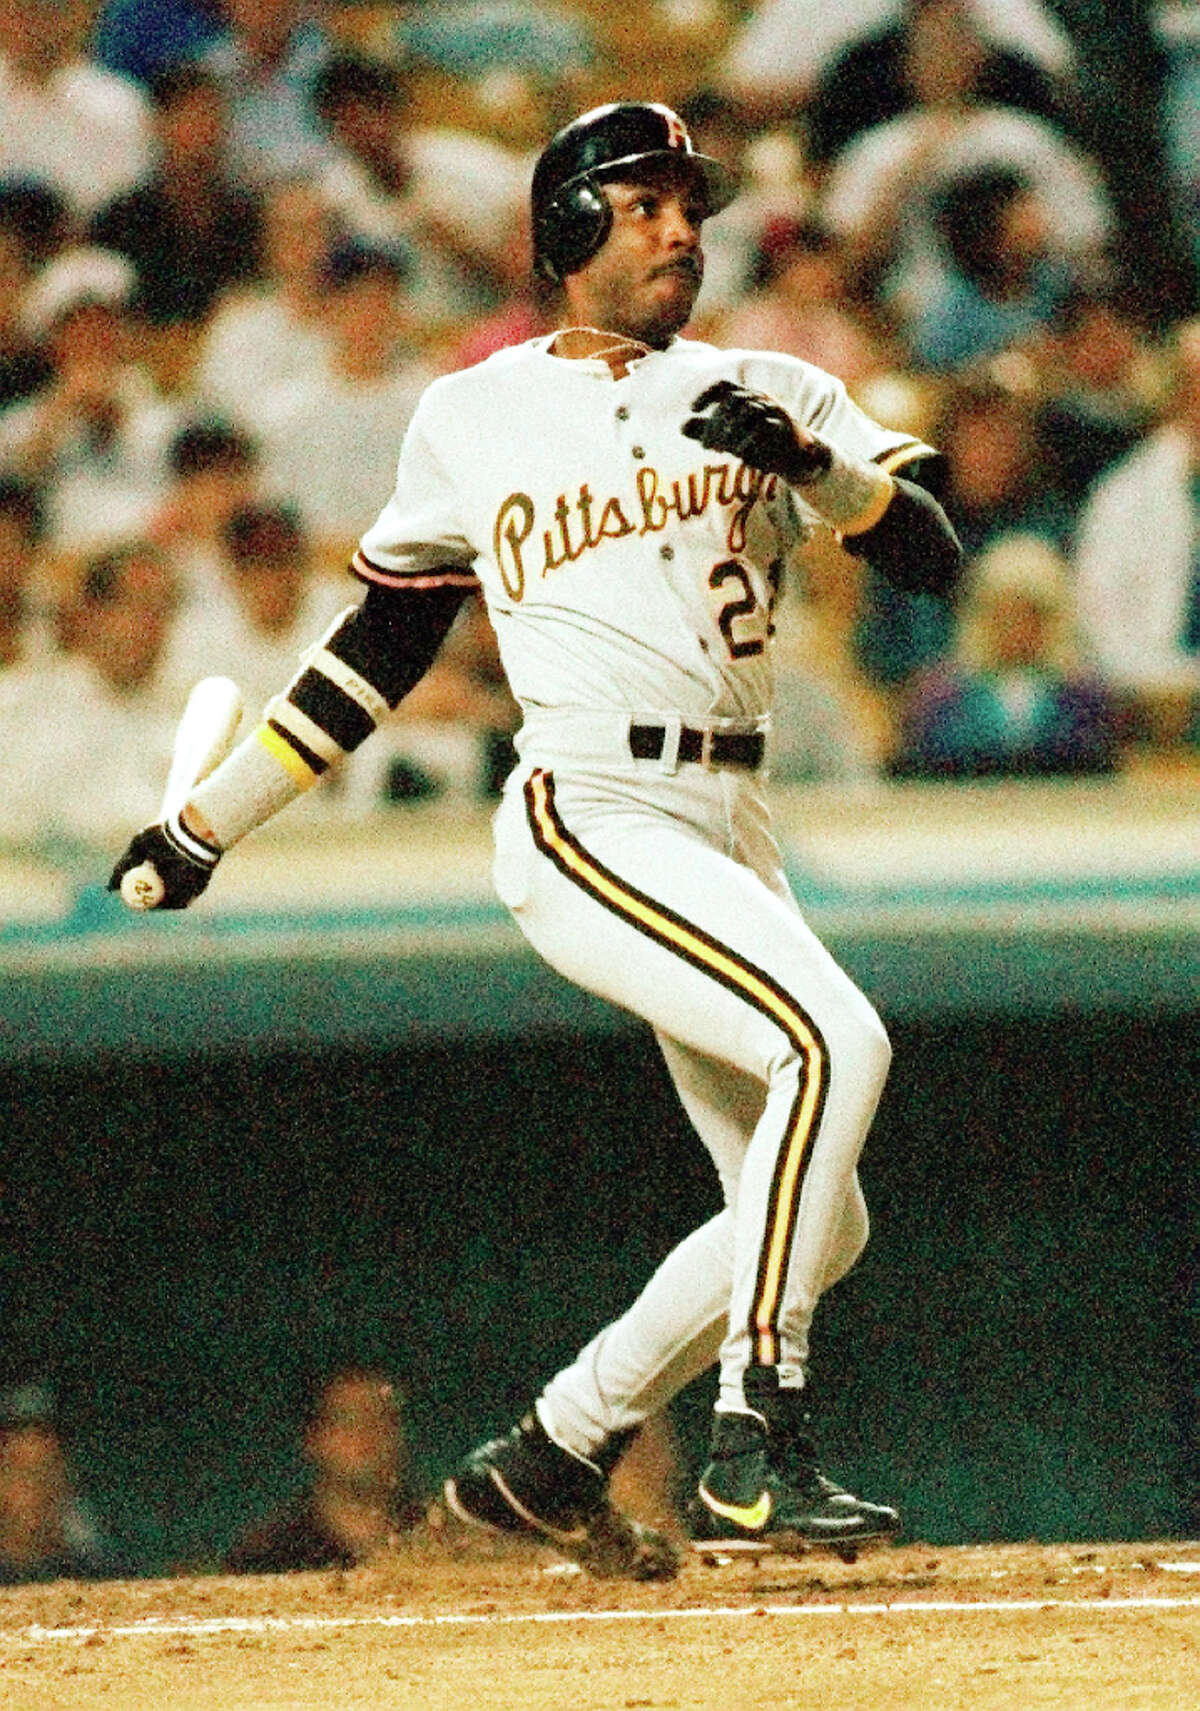 Pittsburgh Pirates' Barry Bonds hits against the Los Angeles Dodgers in this August. 25, 1992 file photo.